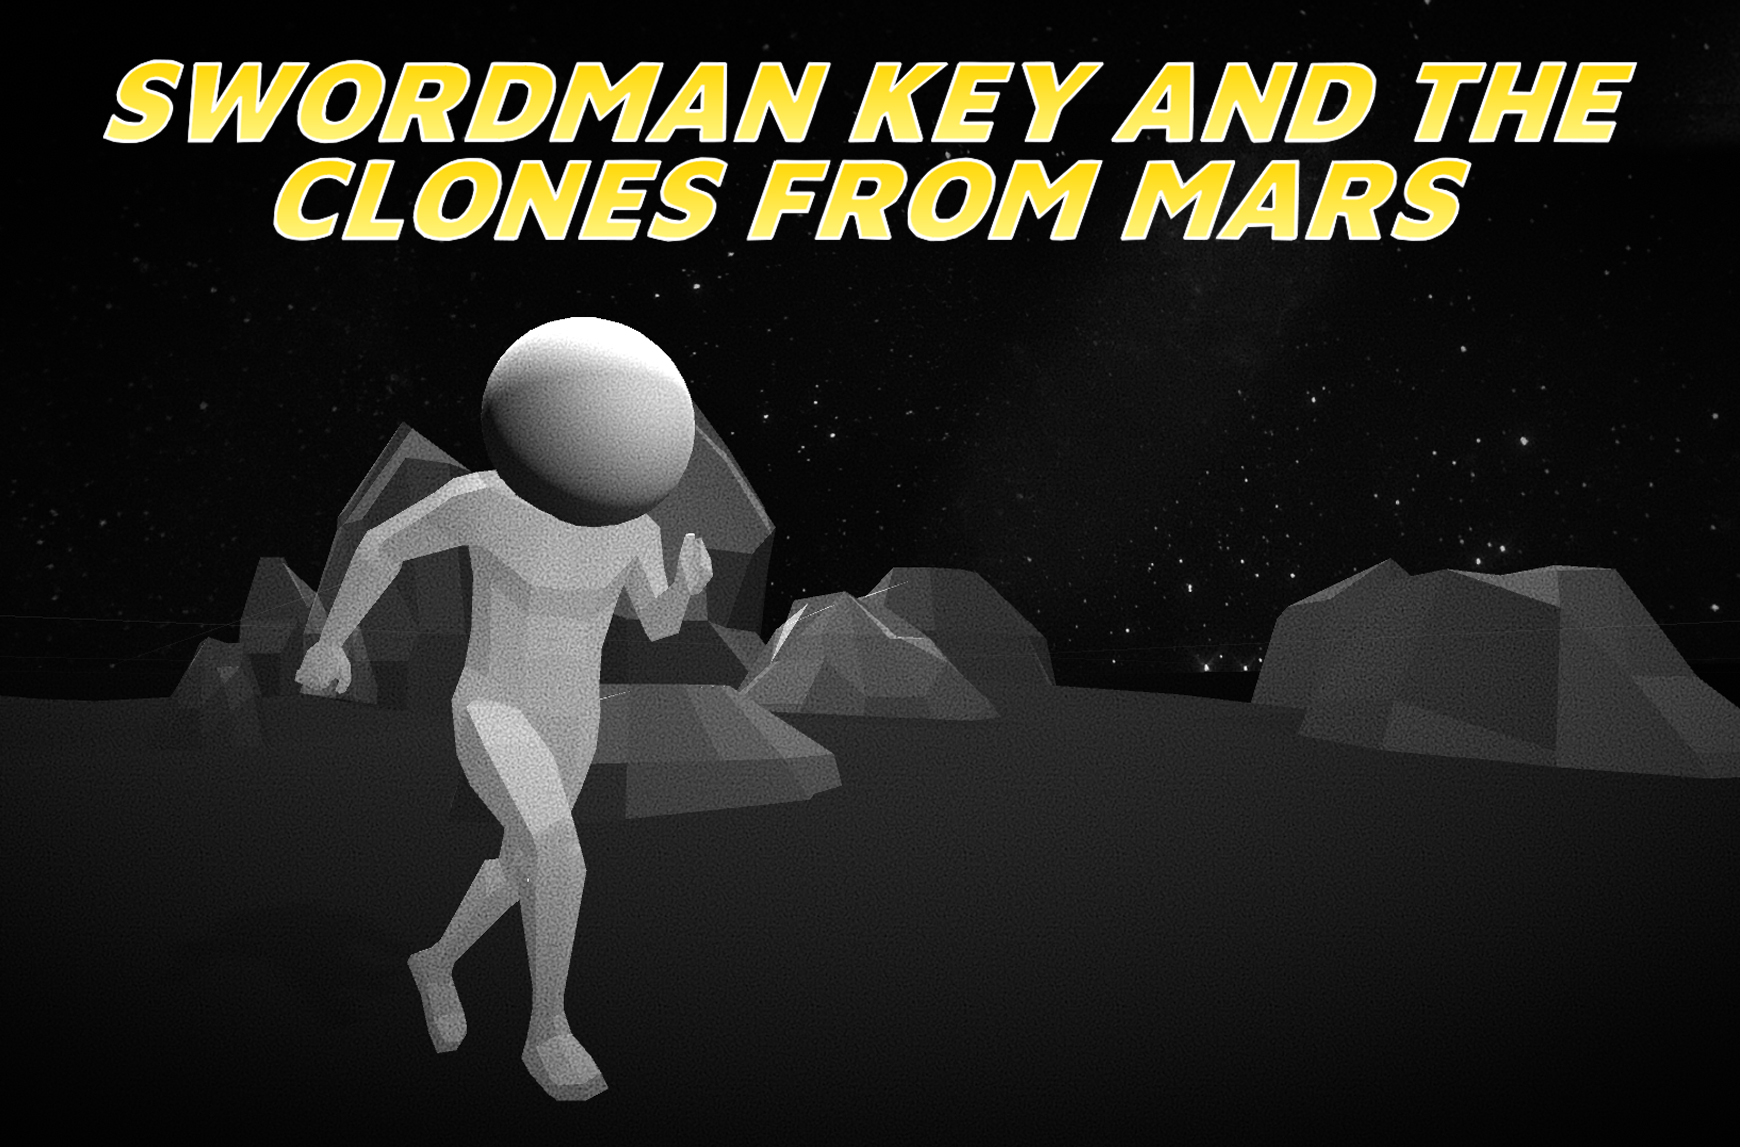 SWORDMAN KEY AND THE CLONES FROM MARS